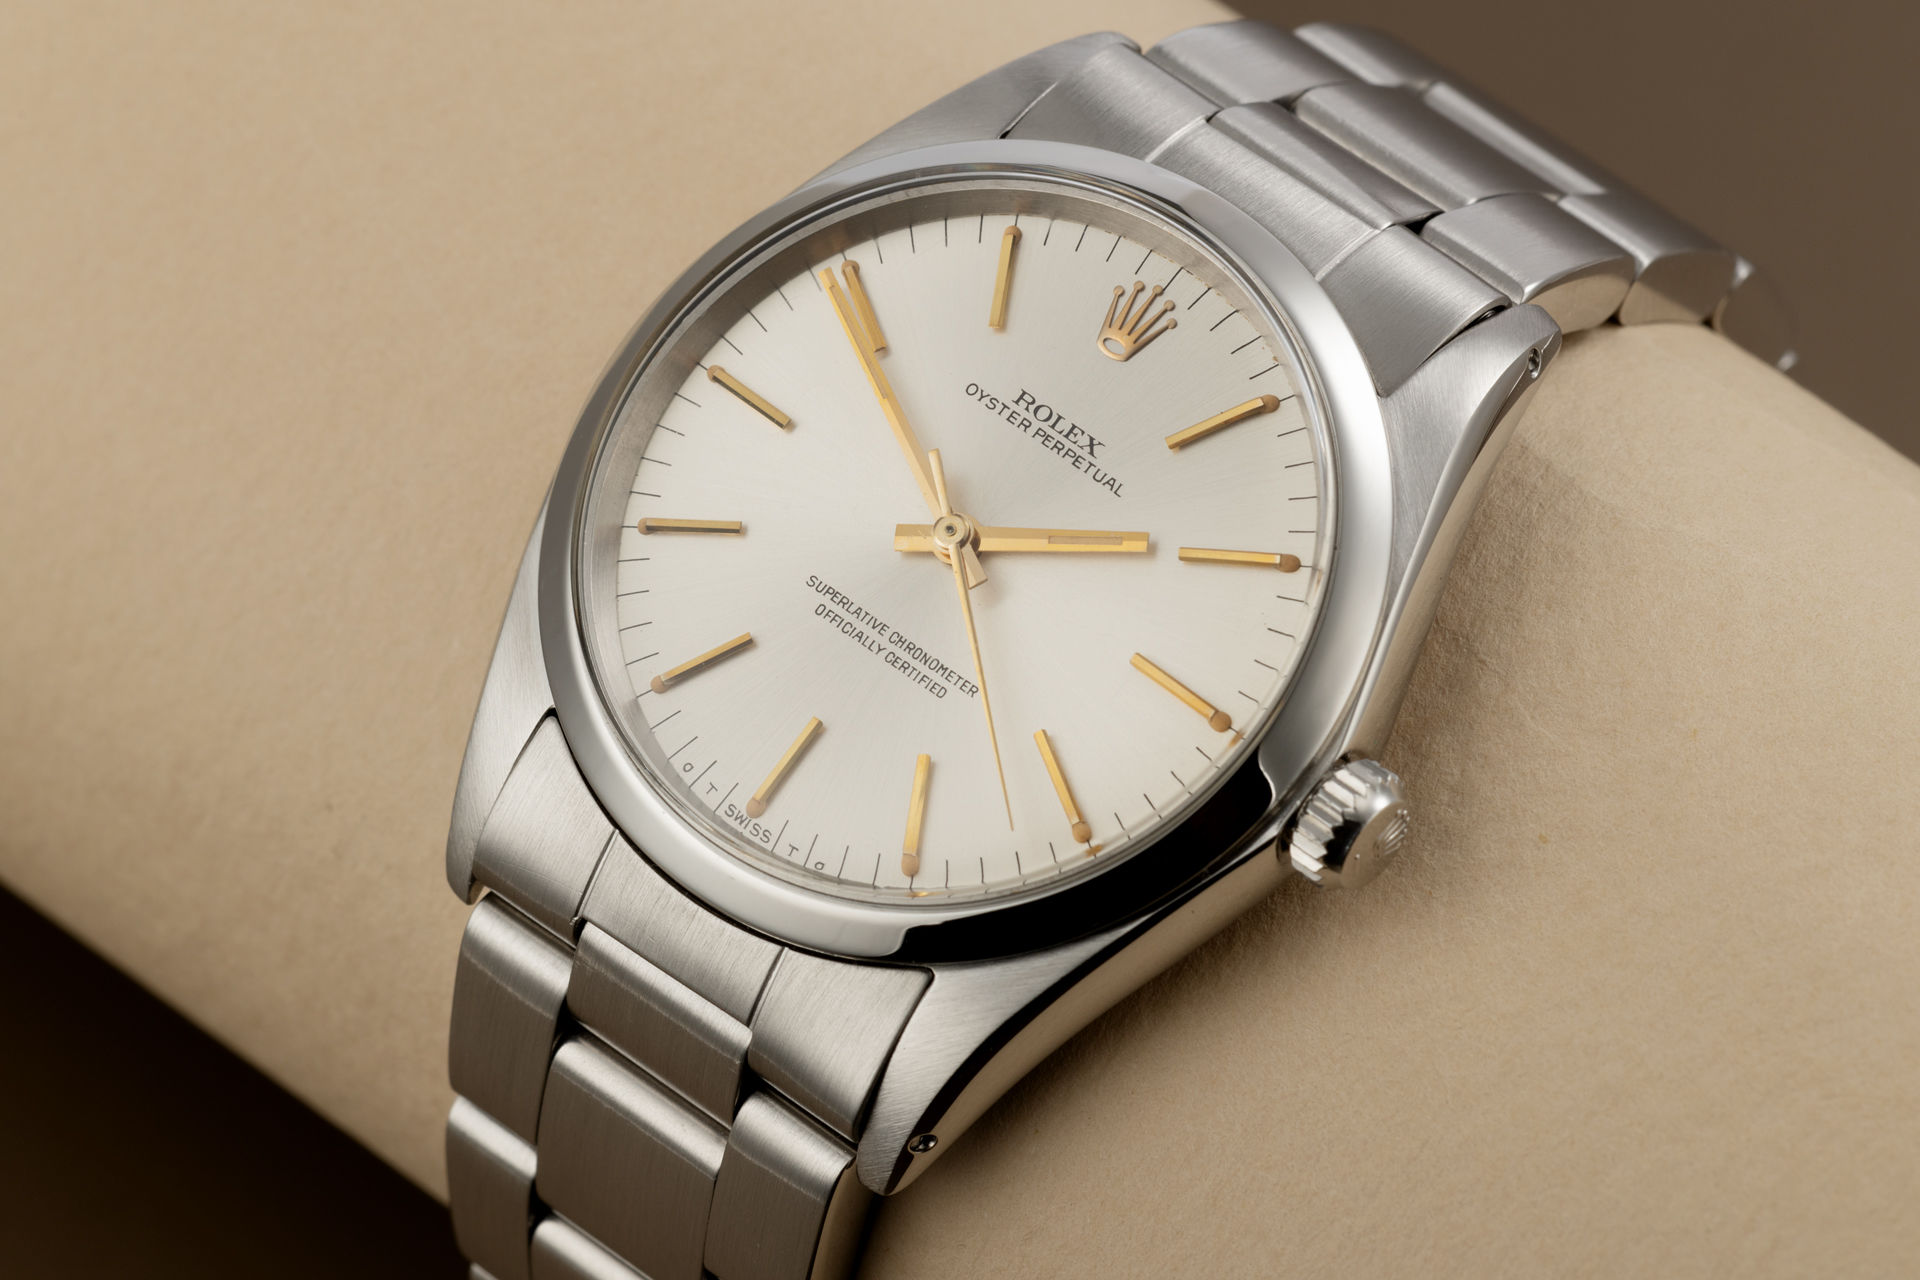 ref 1018 | Beautiful 'Sigma Dial' | Rolex Oyster Perpetual